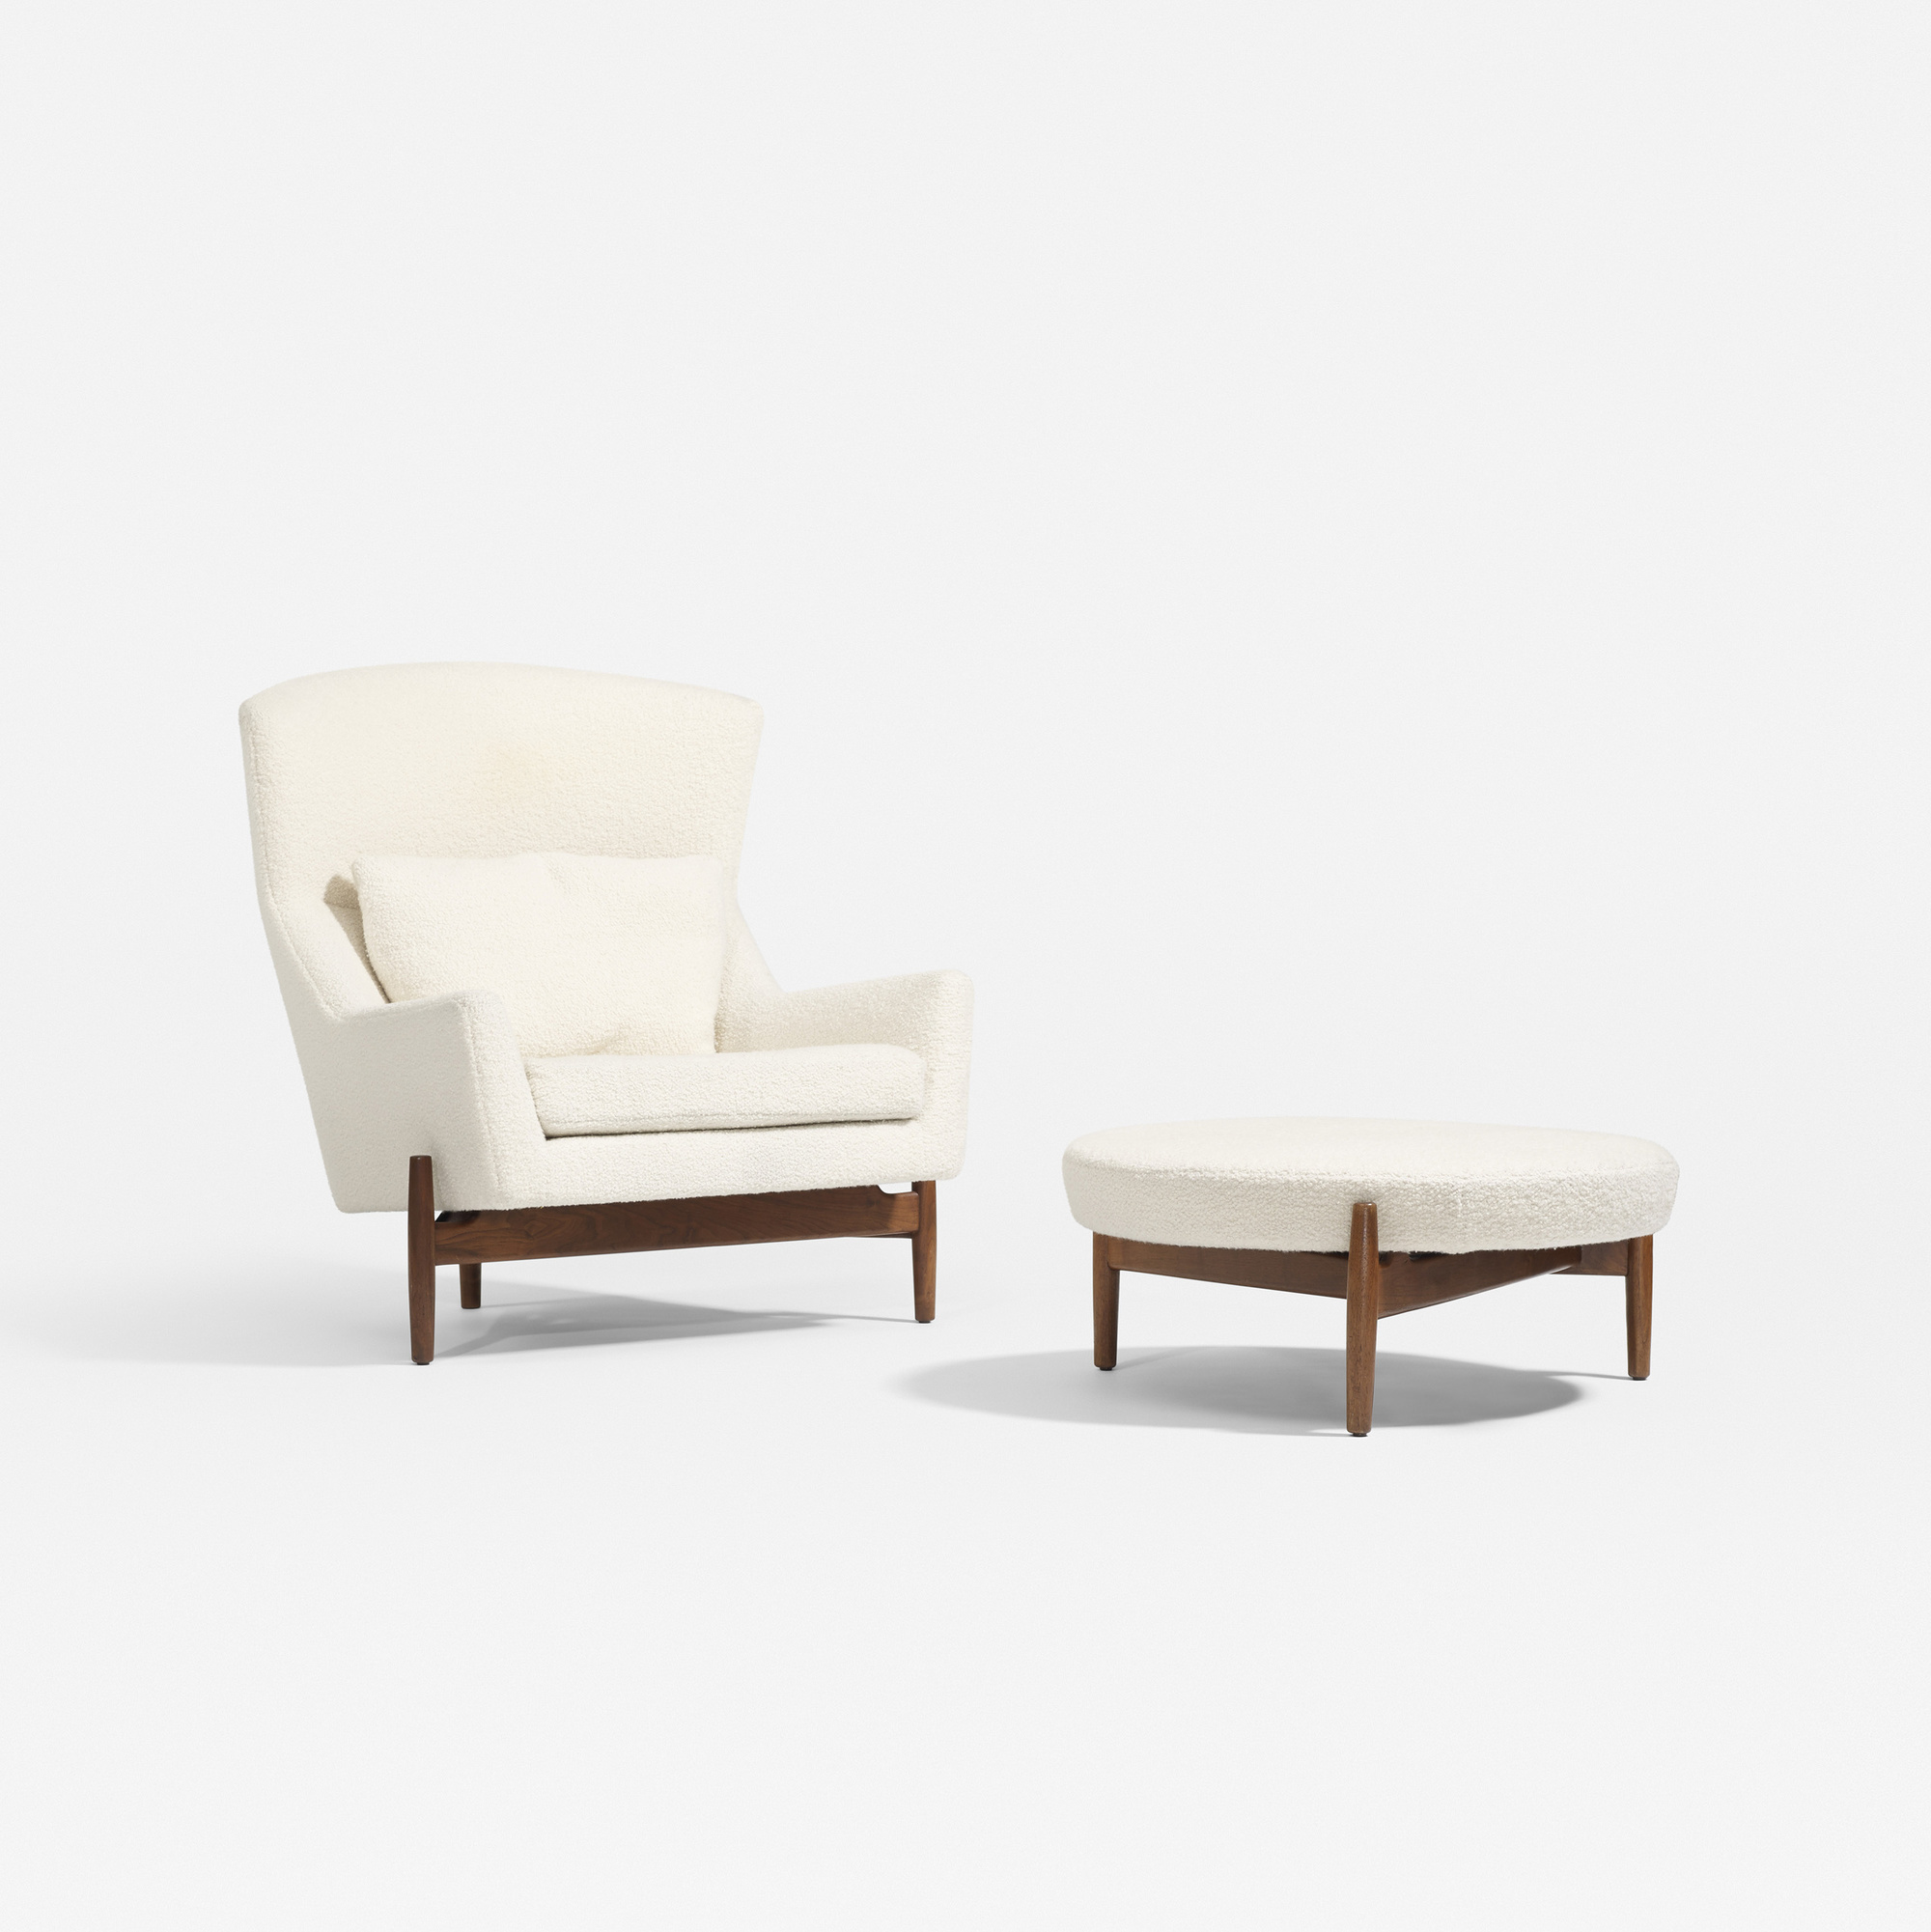 Exceptional 251: Jens Risom / Lounge Chair And Ottoman (1 Of 4)